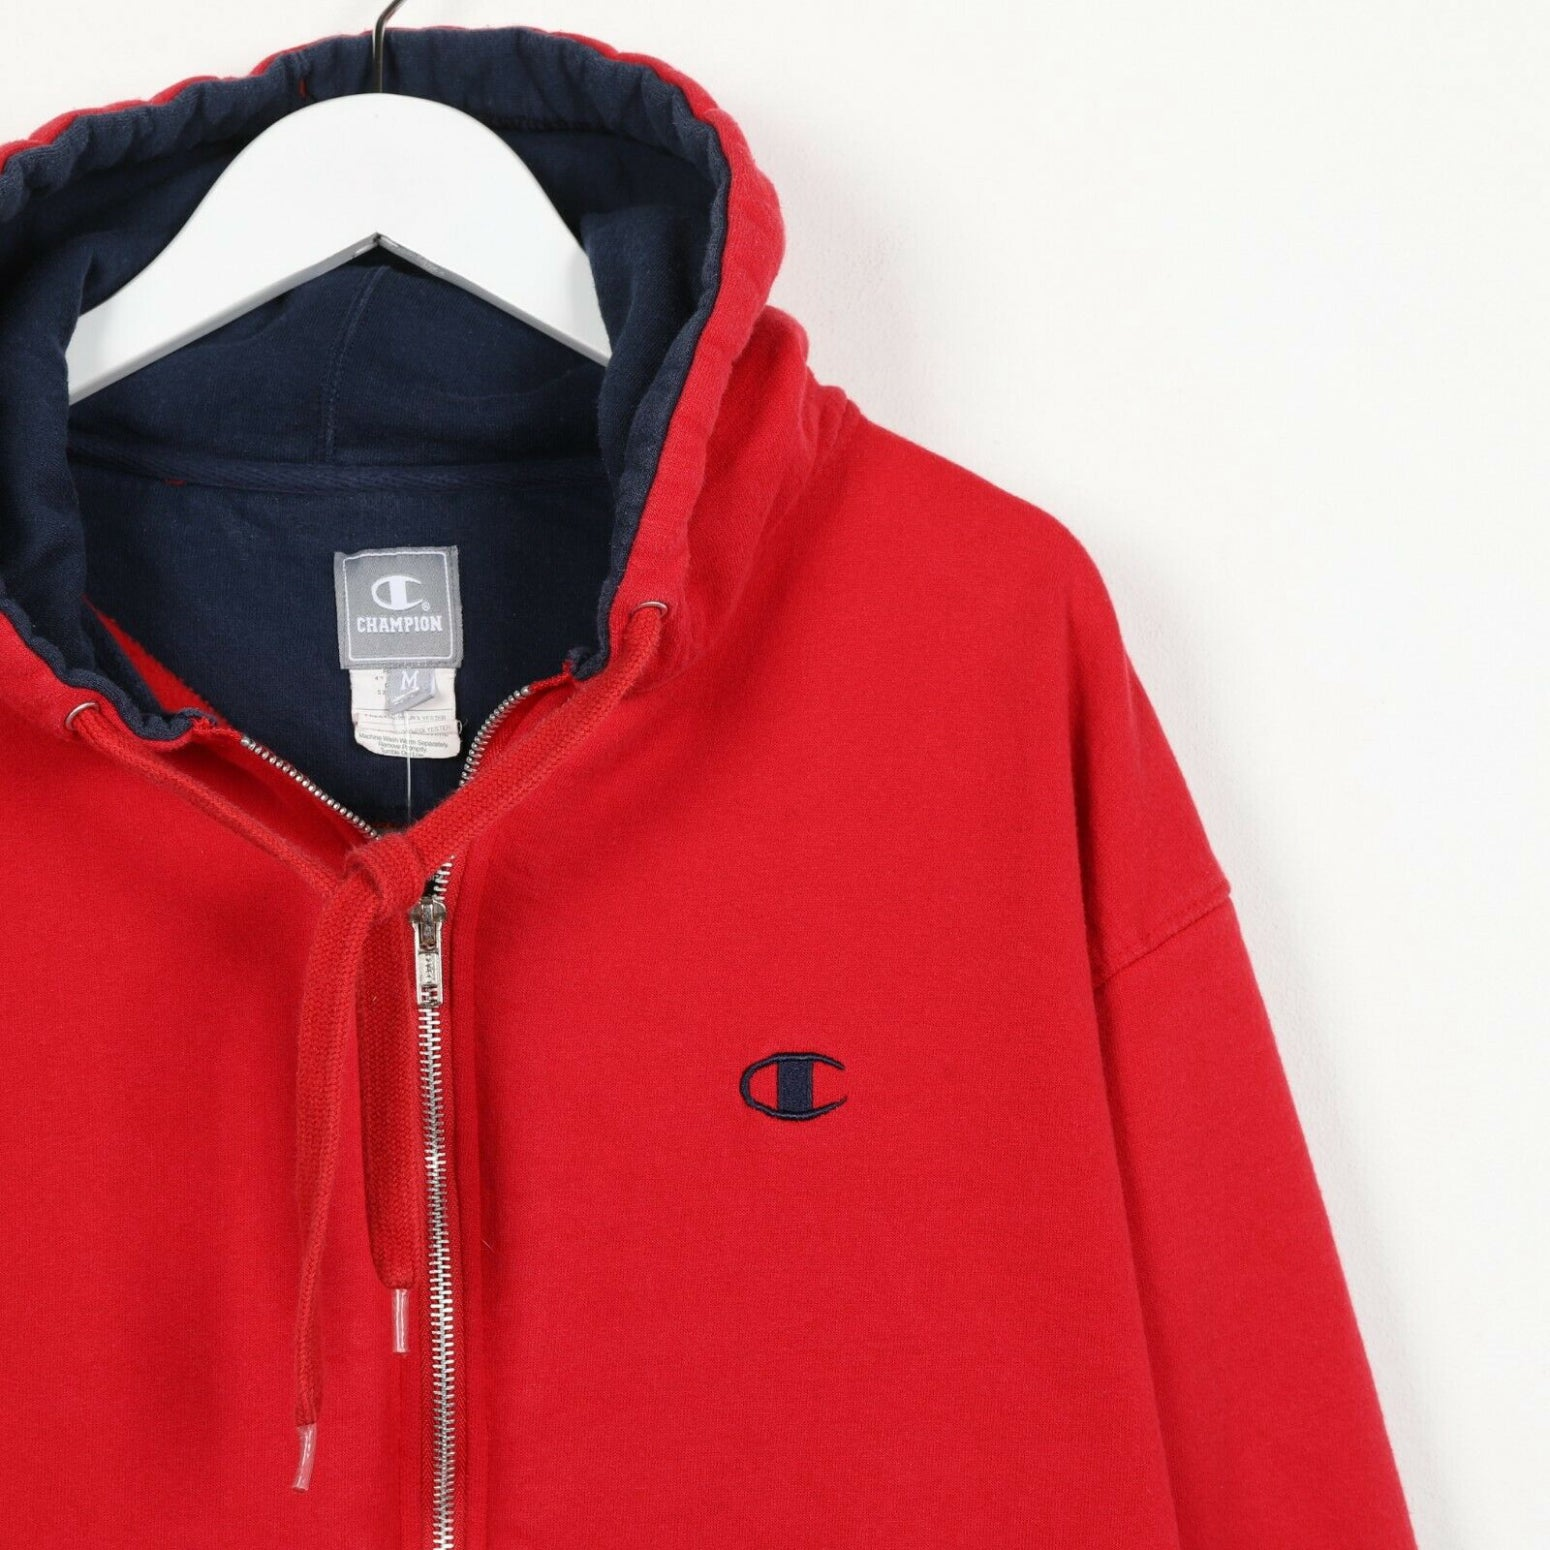 Vintage CHAMPION Small Logo Zip Up Hoodie Sweatshirt Red Medium M